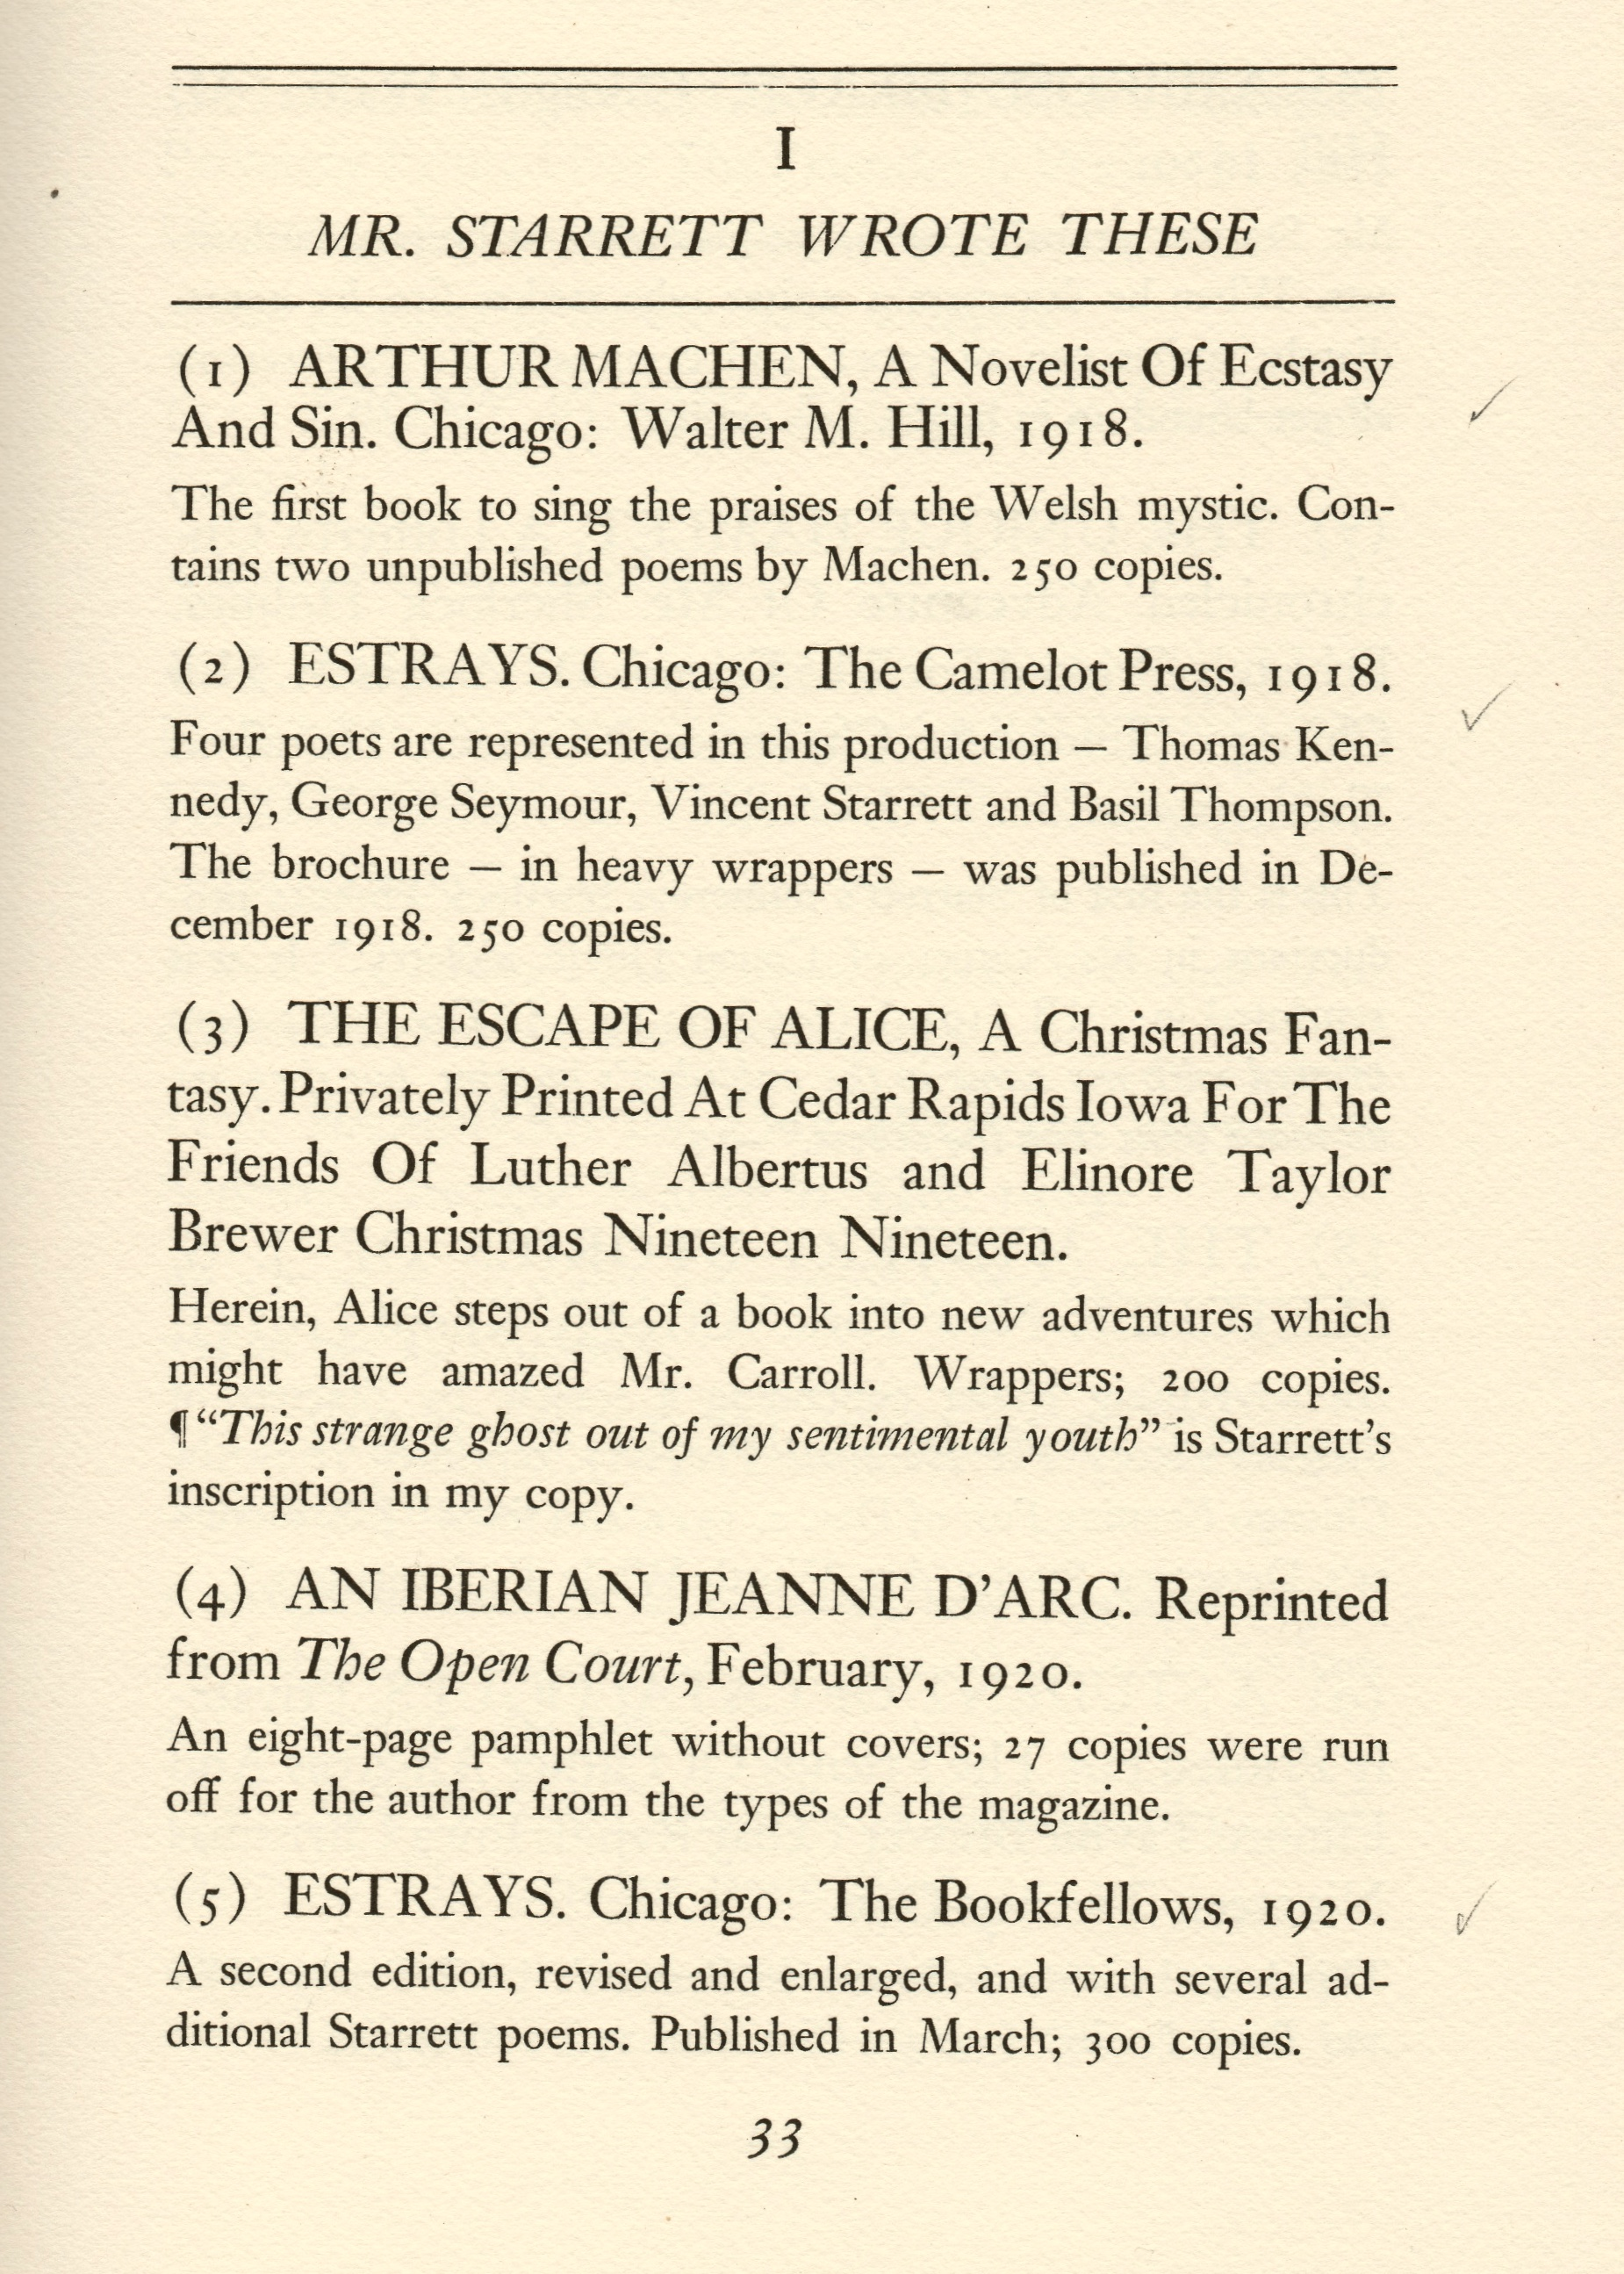 The first page of the bibliography proper.